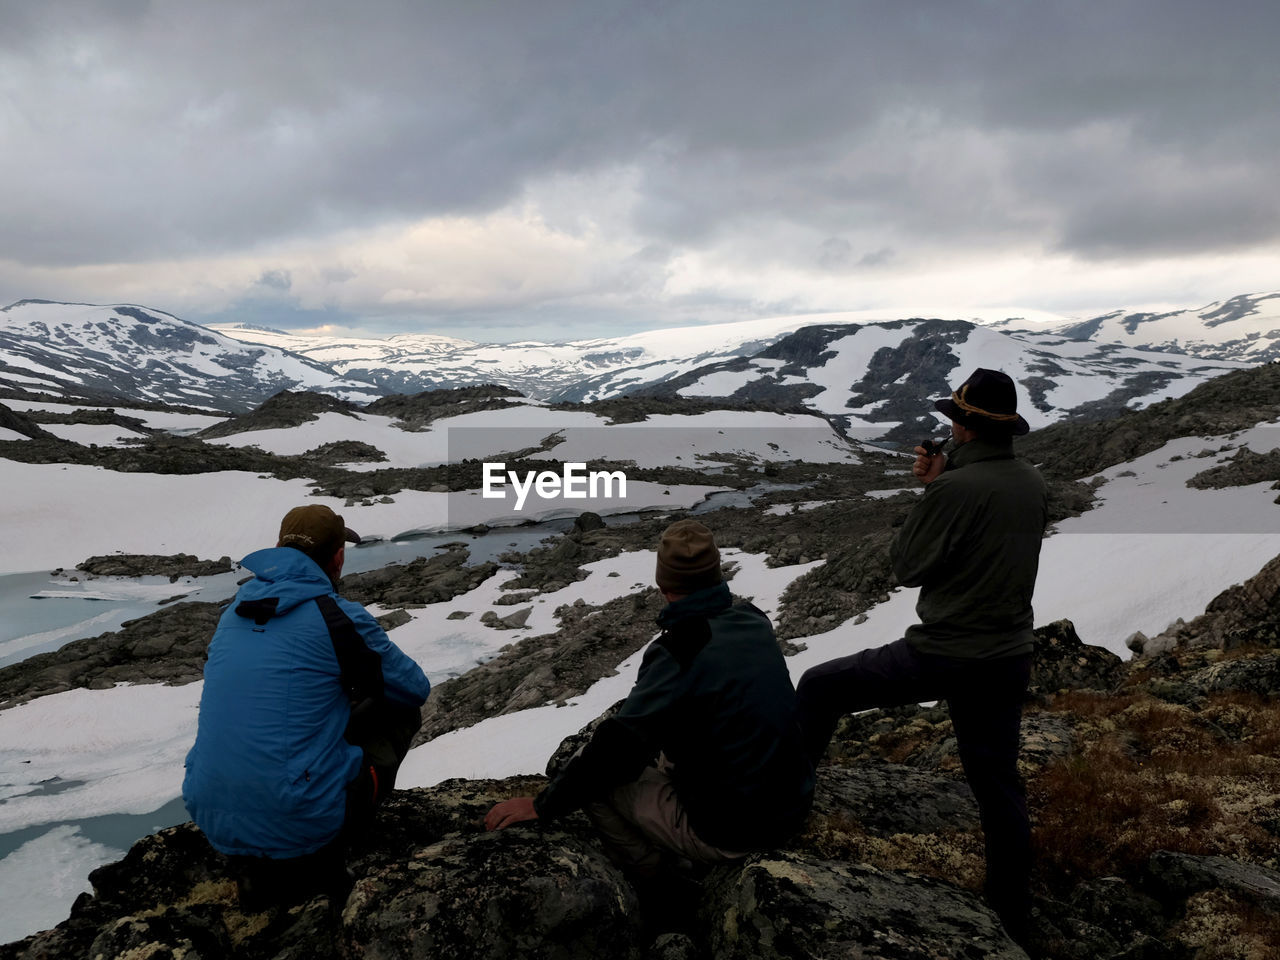 three hikers looking at scenery of Breheimen National Park in Norway where you can experience barren mountains, streaming rivers, opalescent glaciers and rough untouched nature. Breheimen National Park Norway Norway Nature Nature The Great Outdoors - 2018 EyeEm Awards Adventure Beauty In Nature Cold Temperature Looking Looking At View Men Mountain Range Nature Non-urban Scene Outdoor Photography Outdoors People Real People Rear View Watching Wilderness